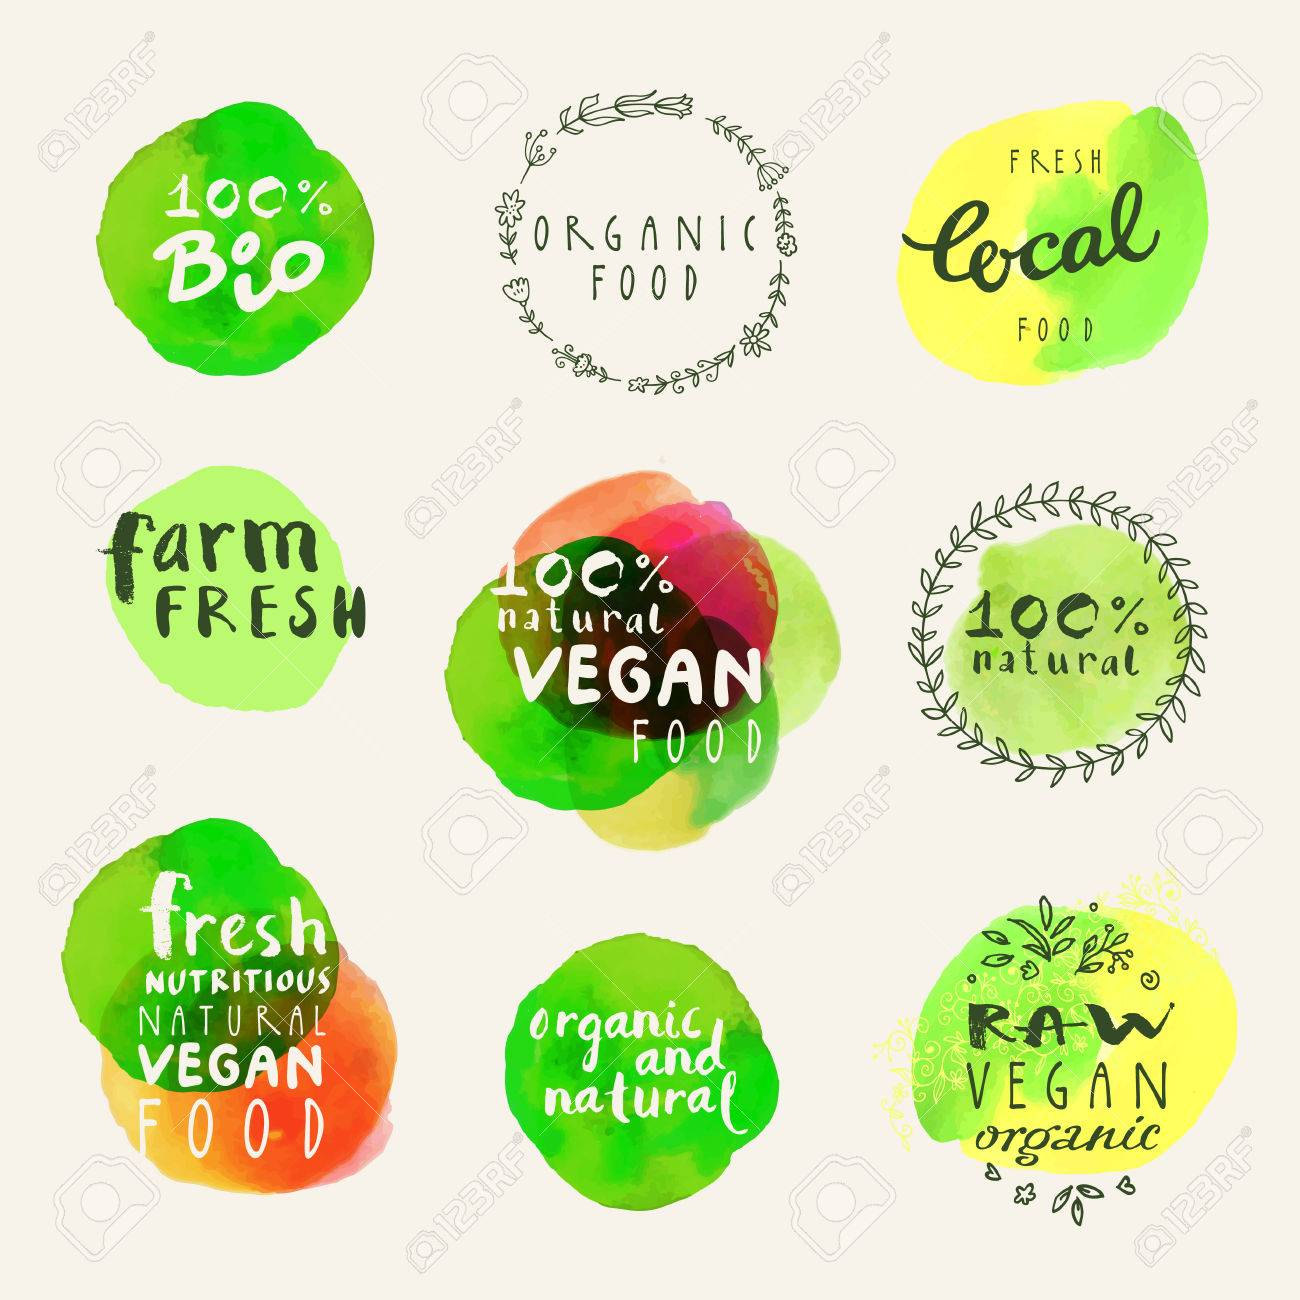 Watercolor organic labels collection. Retro style set of 100% bio organic gluten free eco bio food restaurant menu logo label templates with floral and vintage elements and watercolour splashes in vector - 64874207